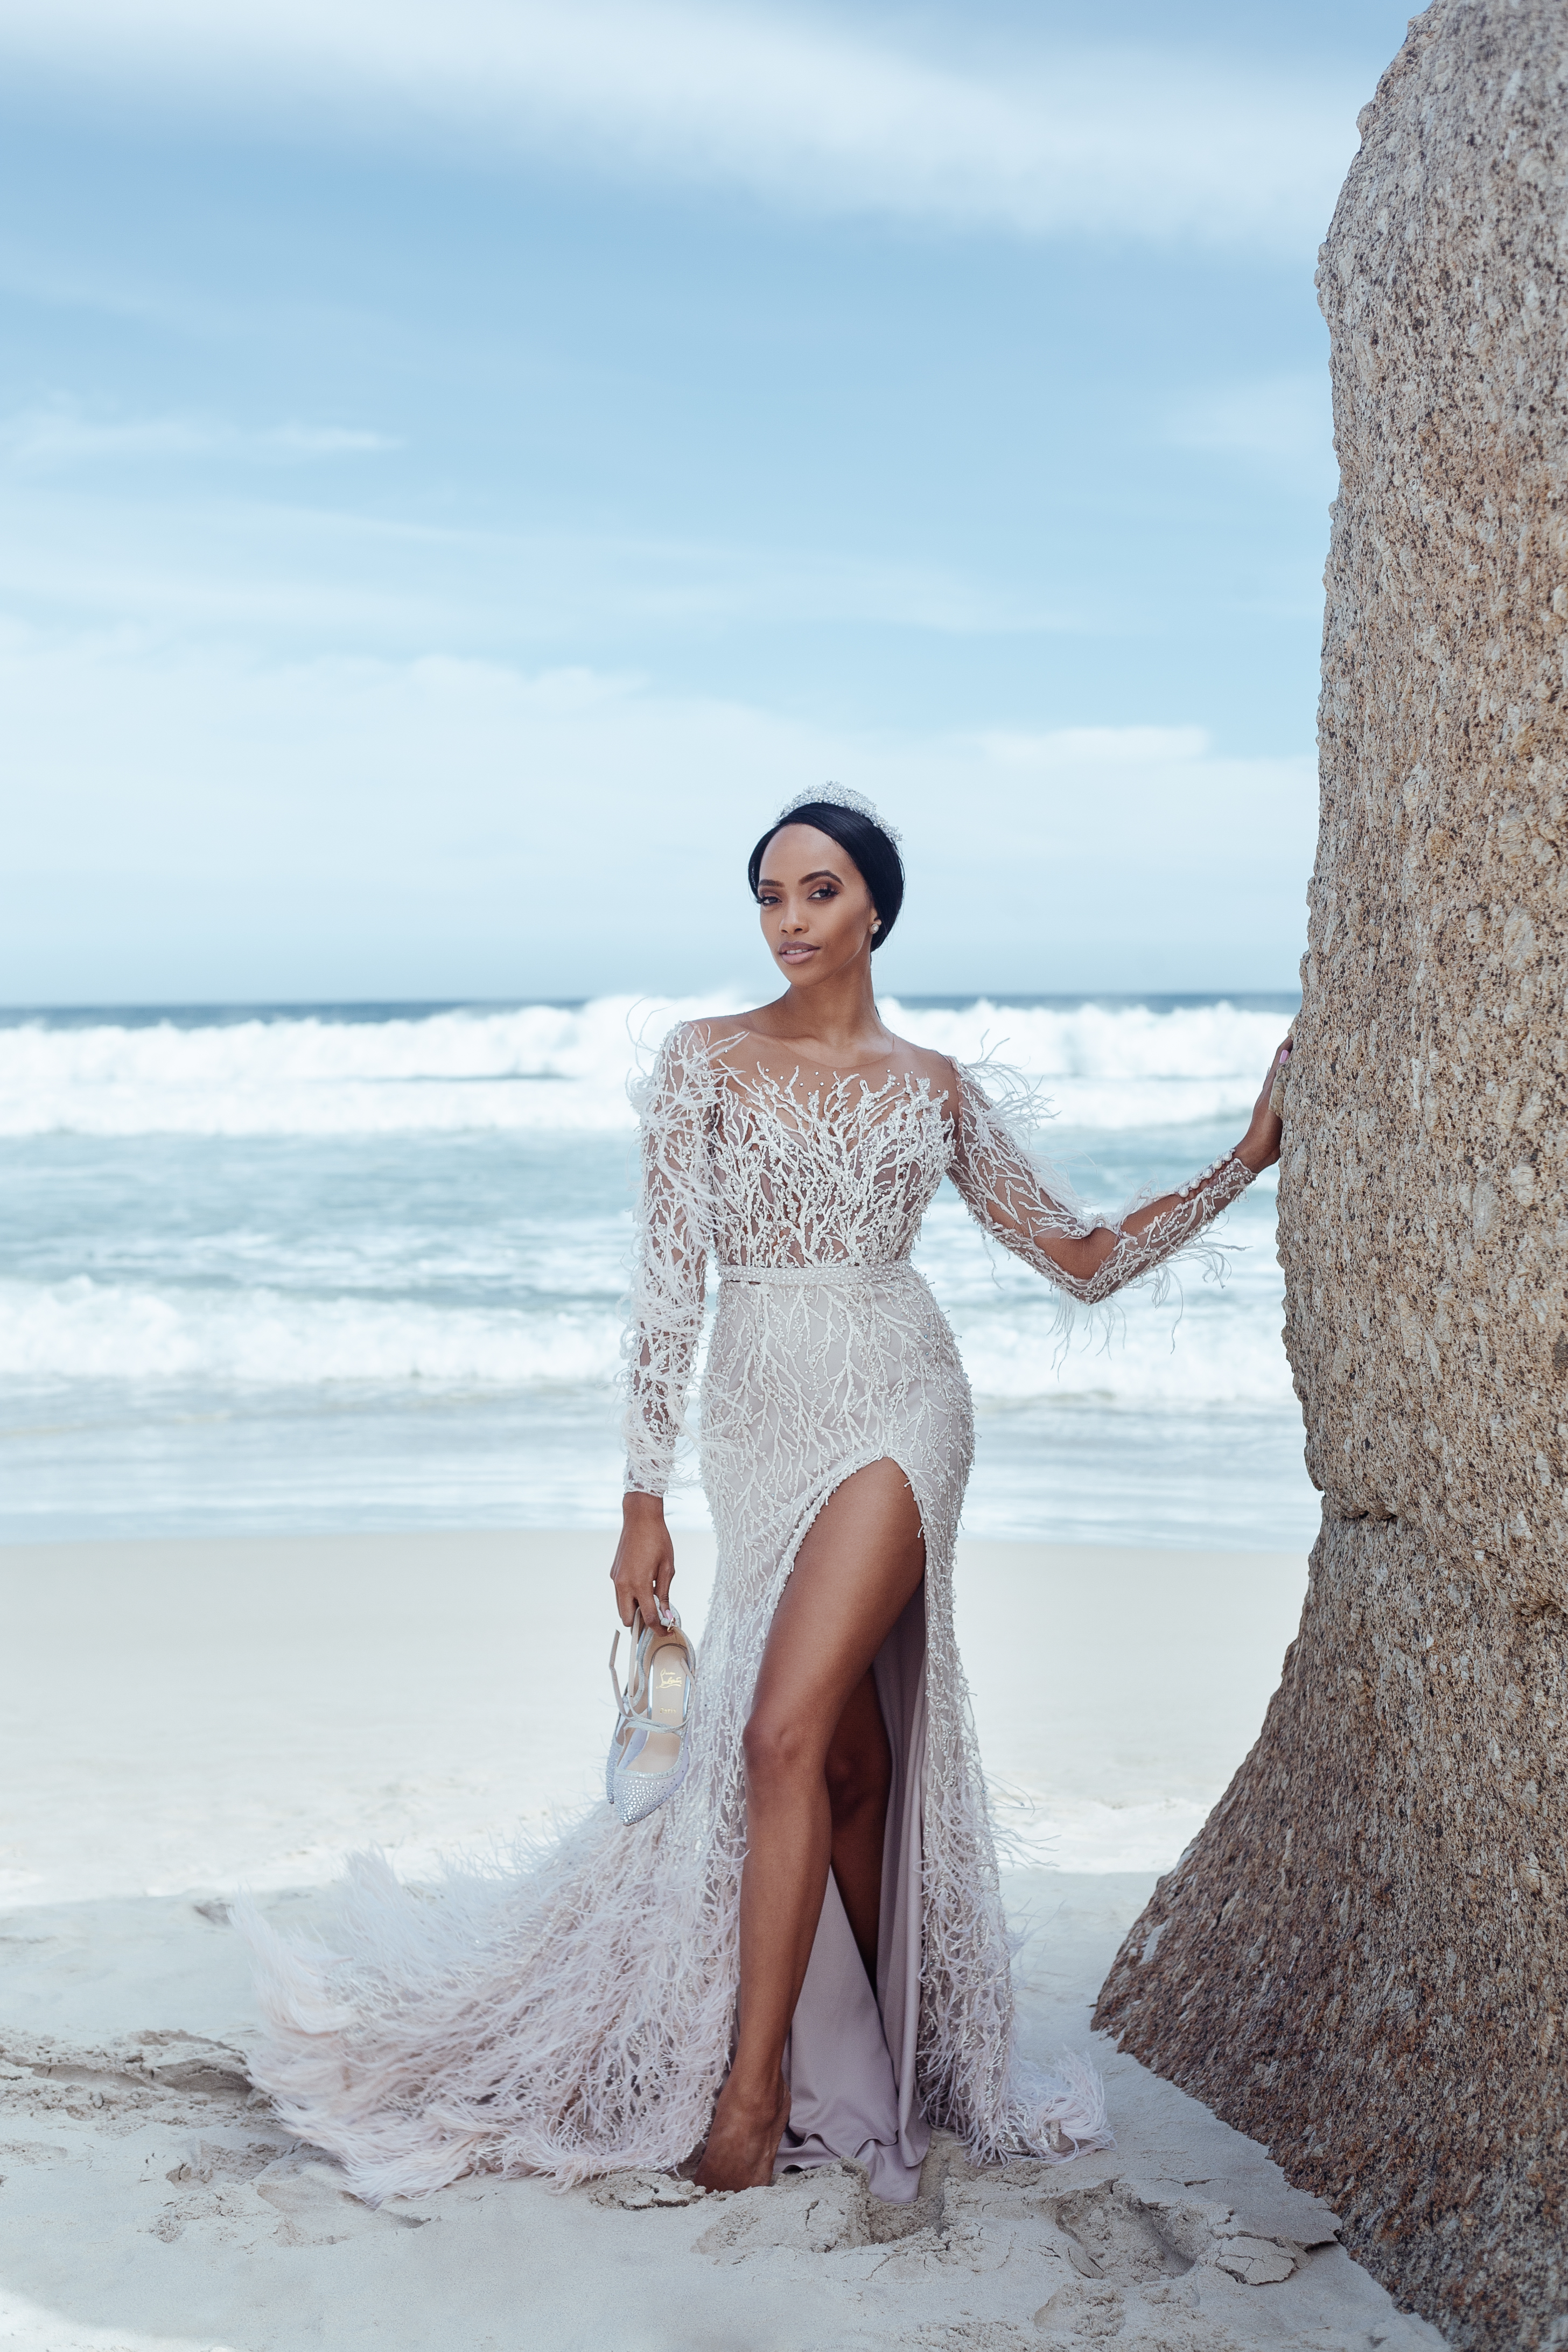 Orapeleng Modutle Is The Womenswear Brand Putting Freedom Of Expression On The Map Bn Style,Macy Dresses For Weddings